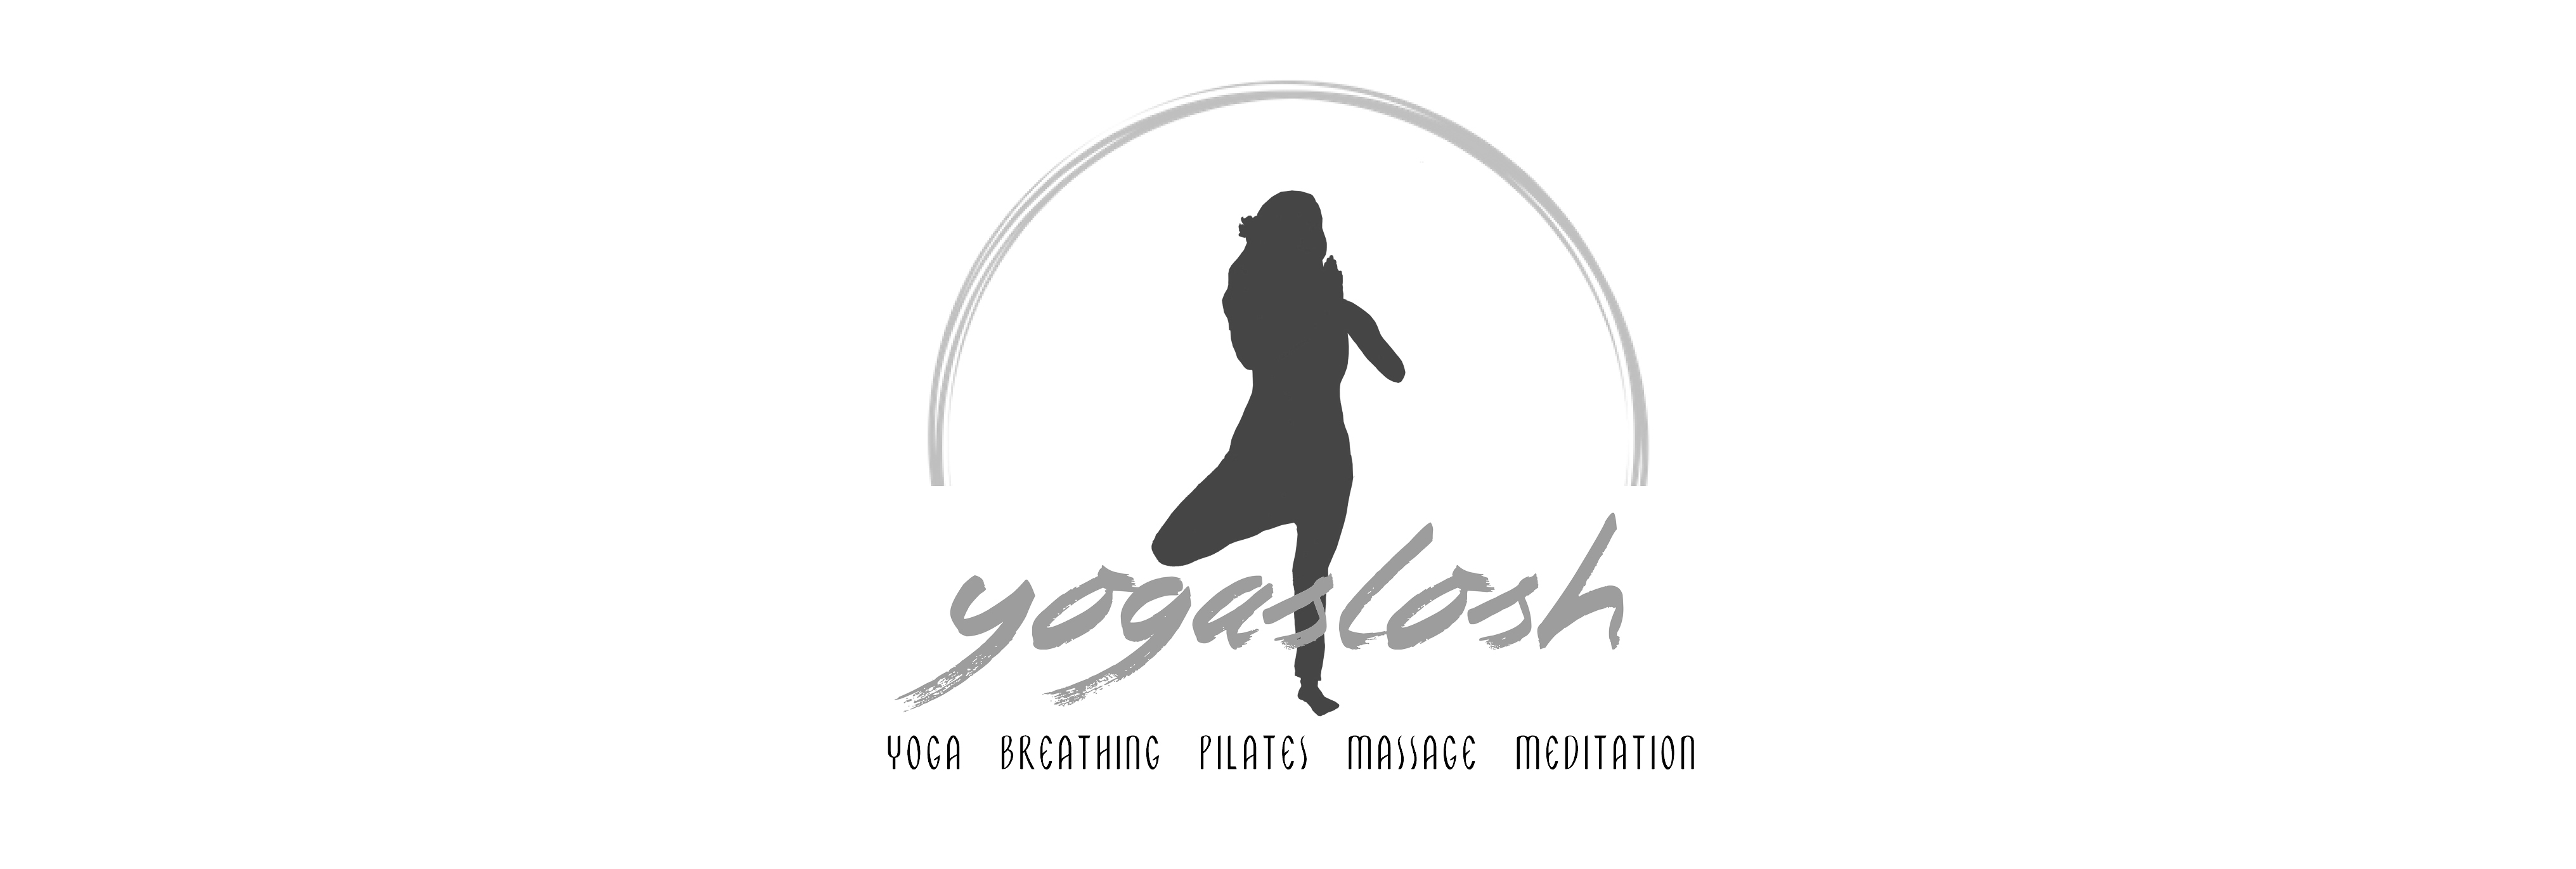 Yoga Slosh | Odd Poppy Advertising Agency | Johannesburg | Clients